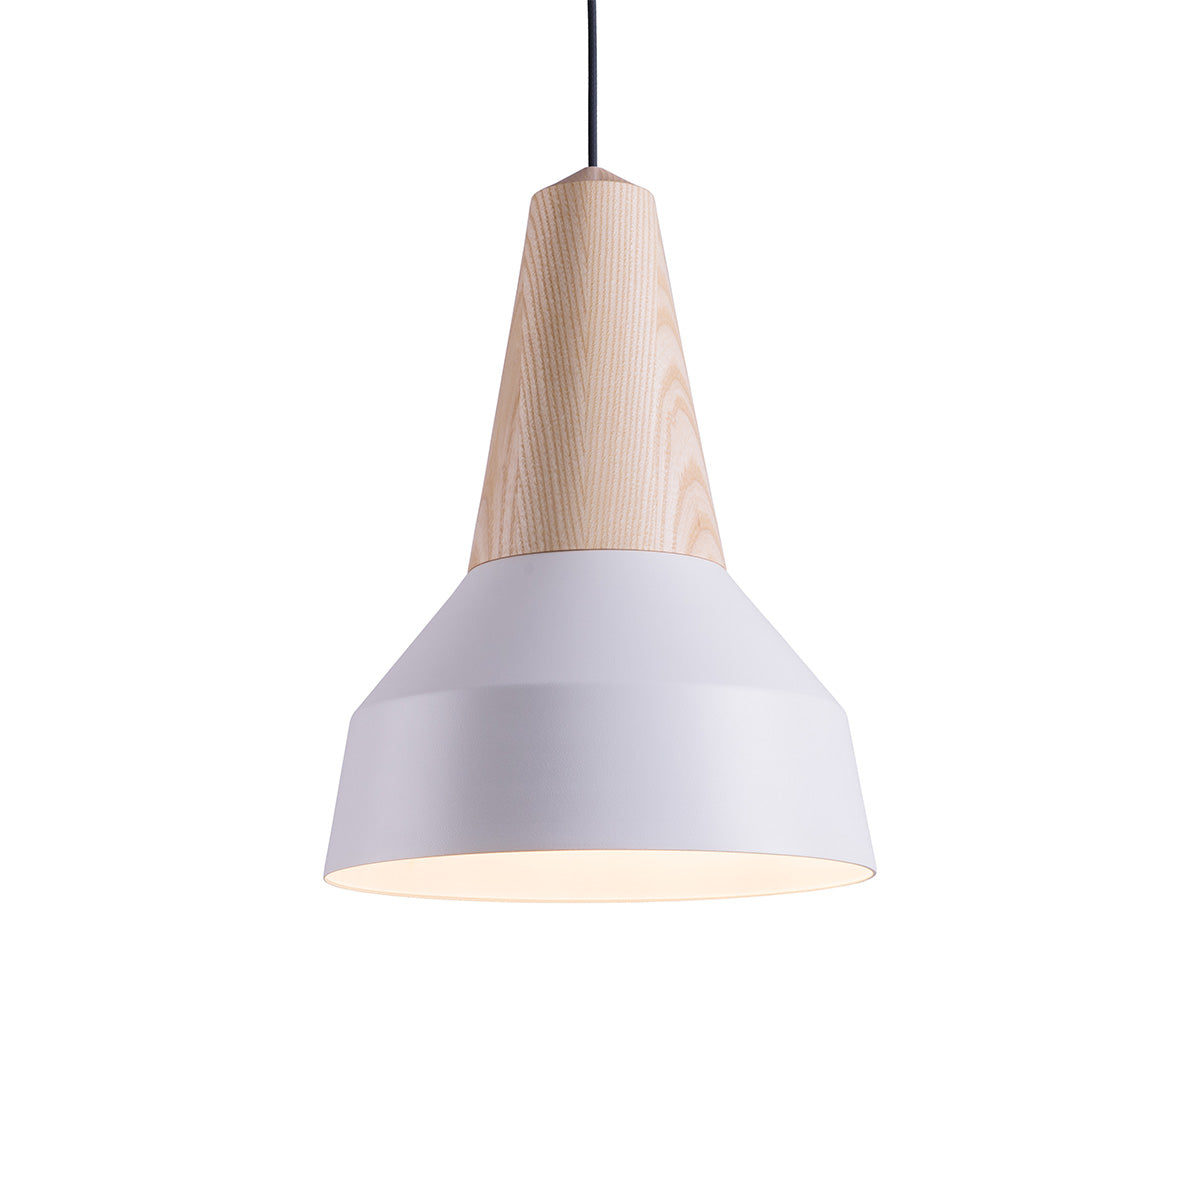 Schneid - Schneid Lighting - Schneid Eikon Lamp Basic - Niklas Jessen - Sustainable Design  - German Design - Lighting - Ash | Sustainable Living | Simple Design